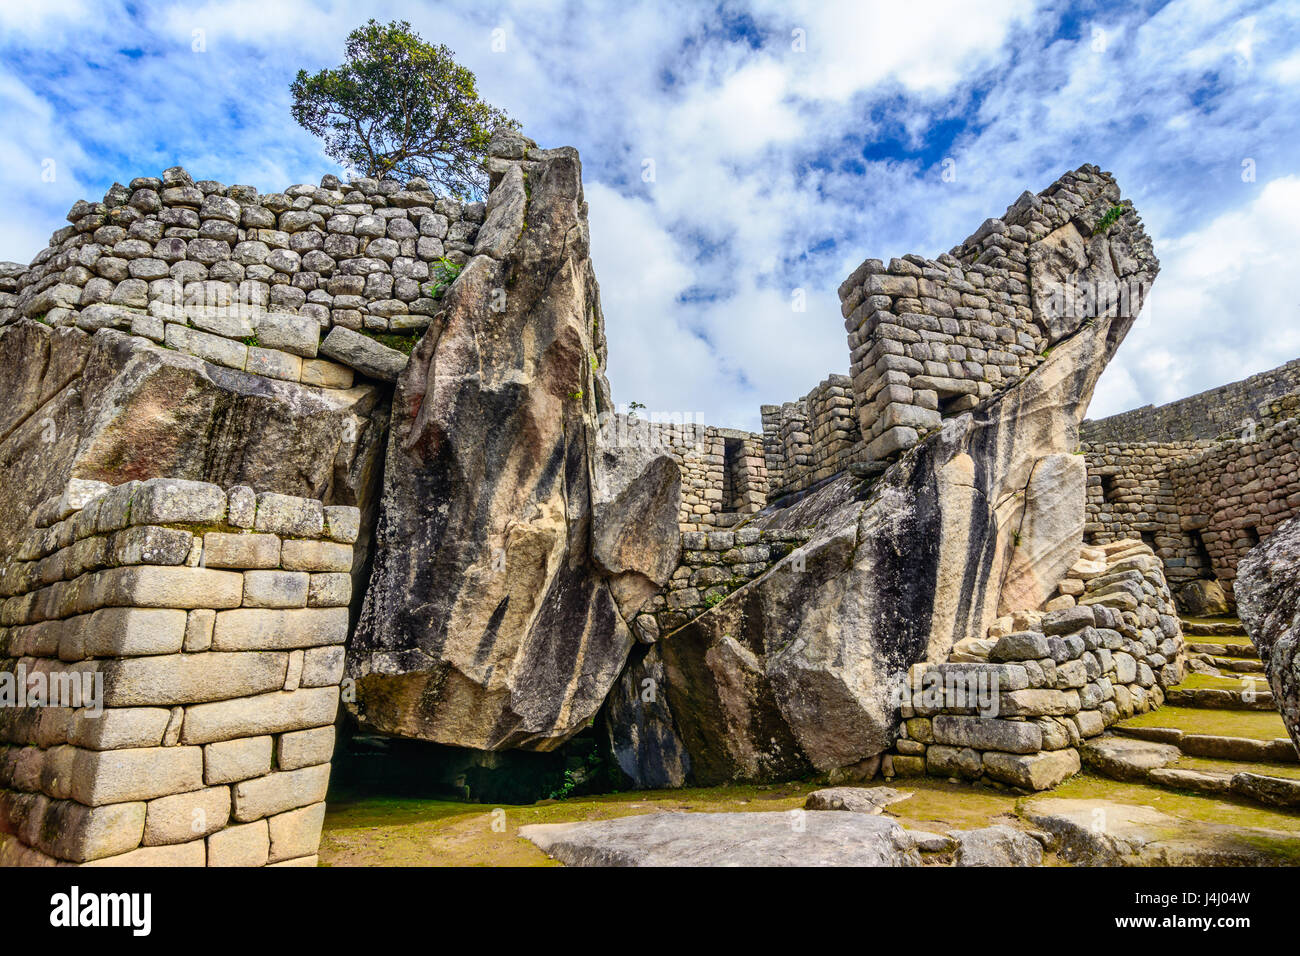 Condor temple Machu Picchu, Incas ruins in the peruvian Andes at Cuzco Peru - Stock Image